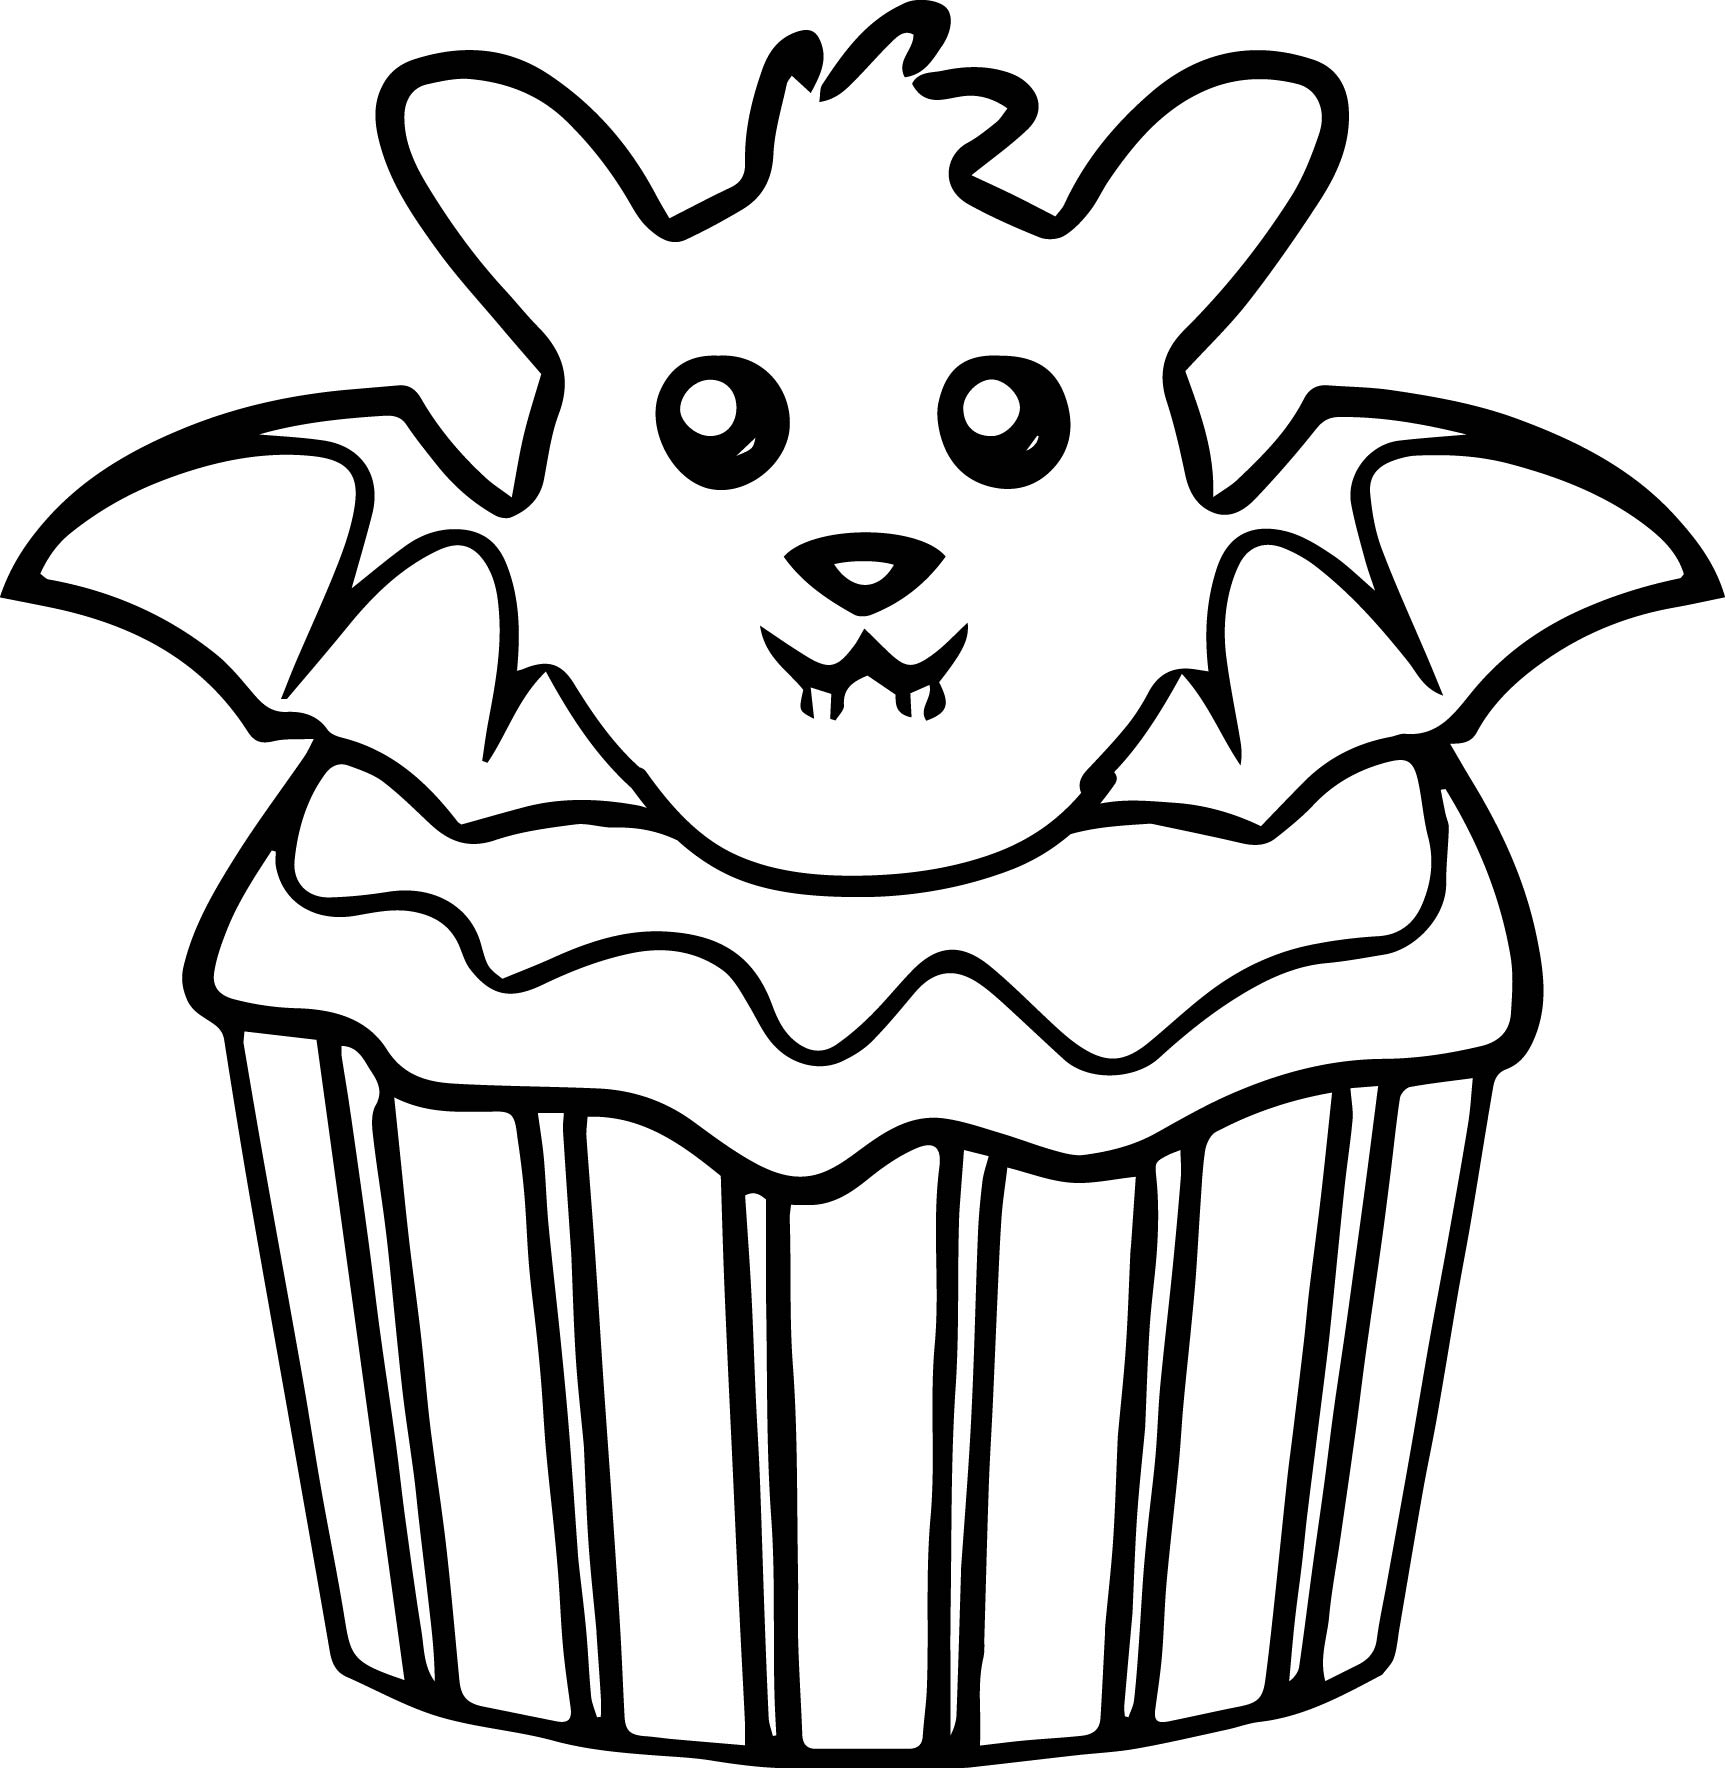 halloween bat cupcake coloring page - Cupcakes Coloring Pages